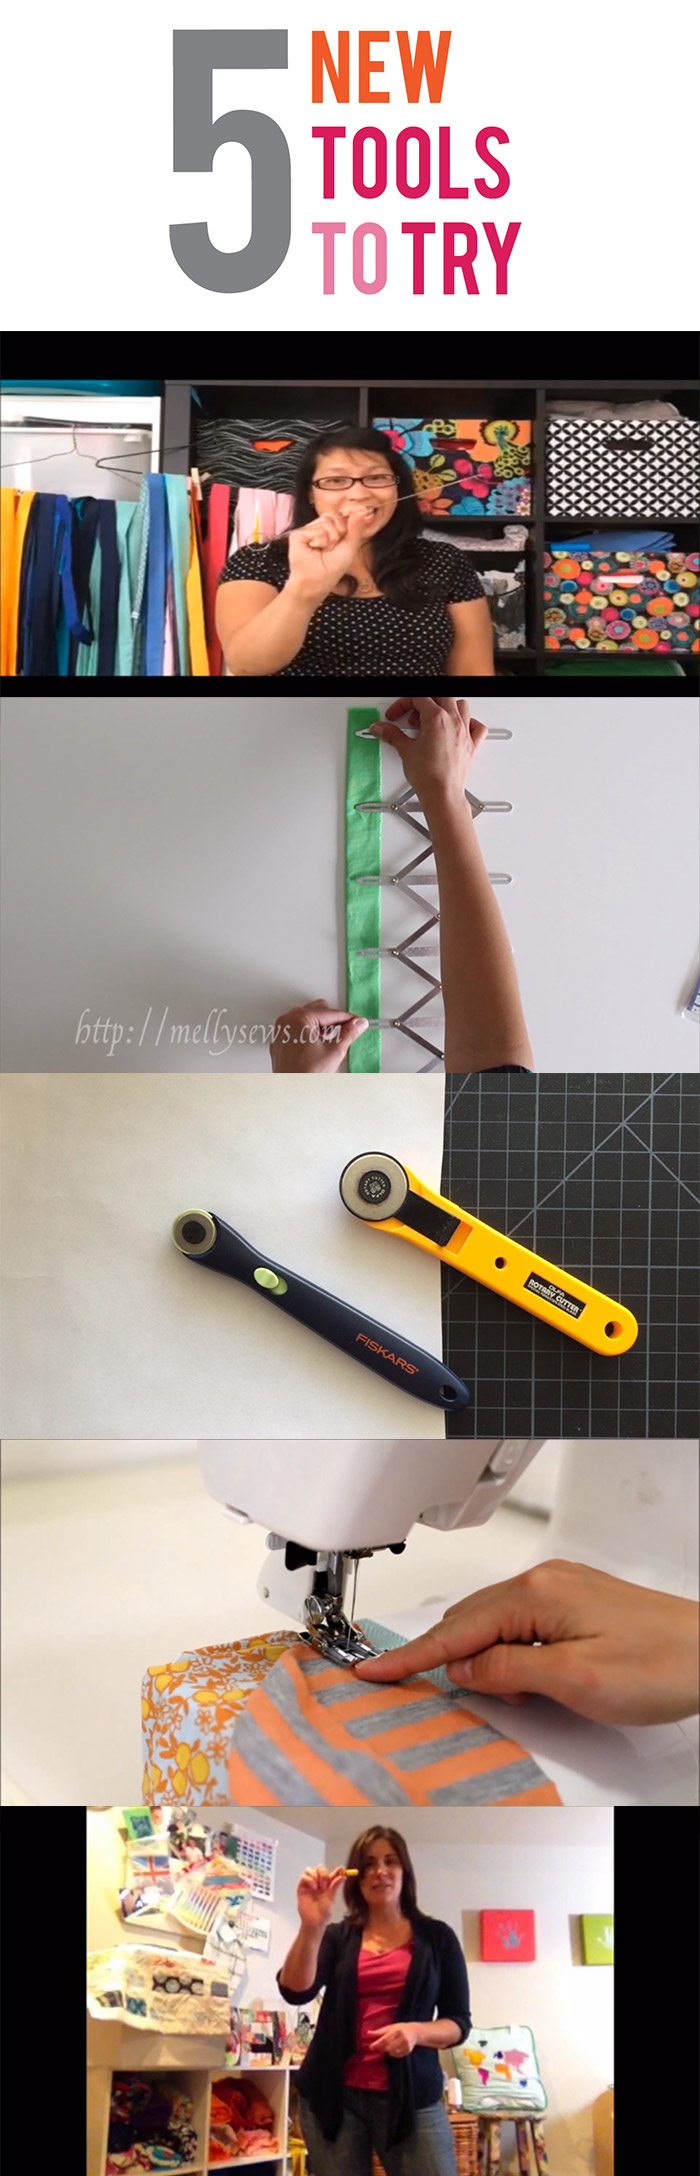 5 new sewing tools to try! (unless you've already tried all of these?)